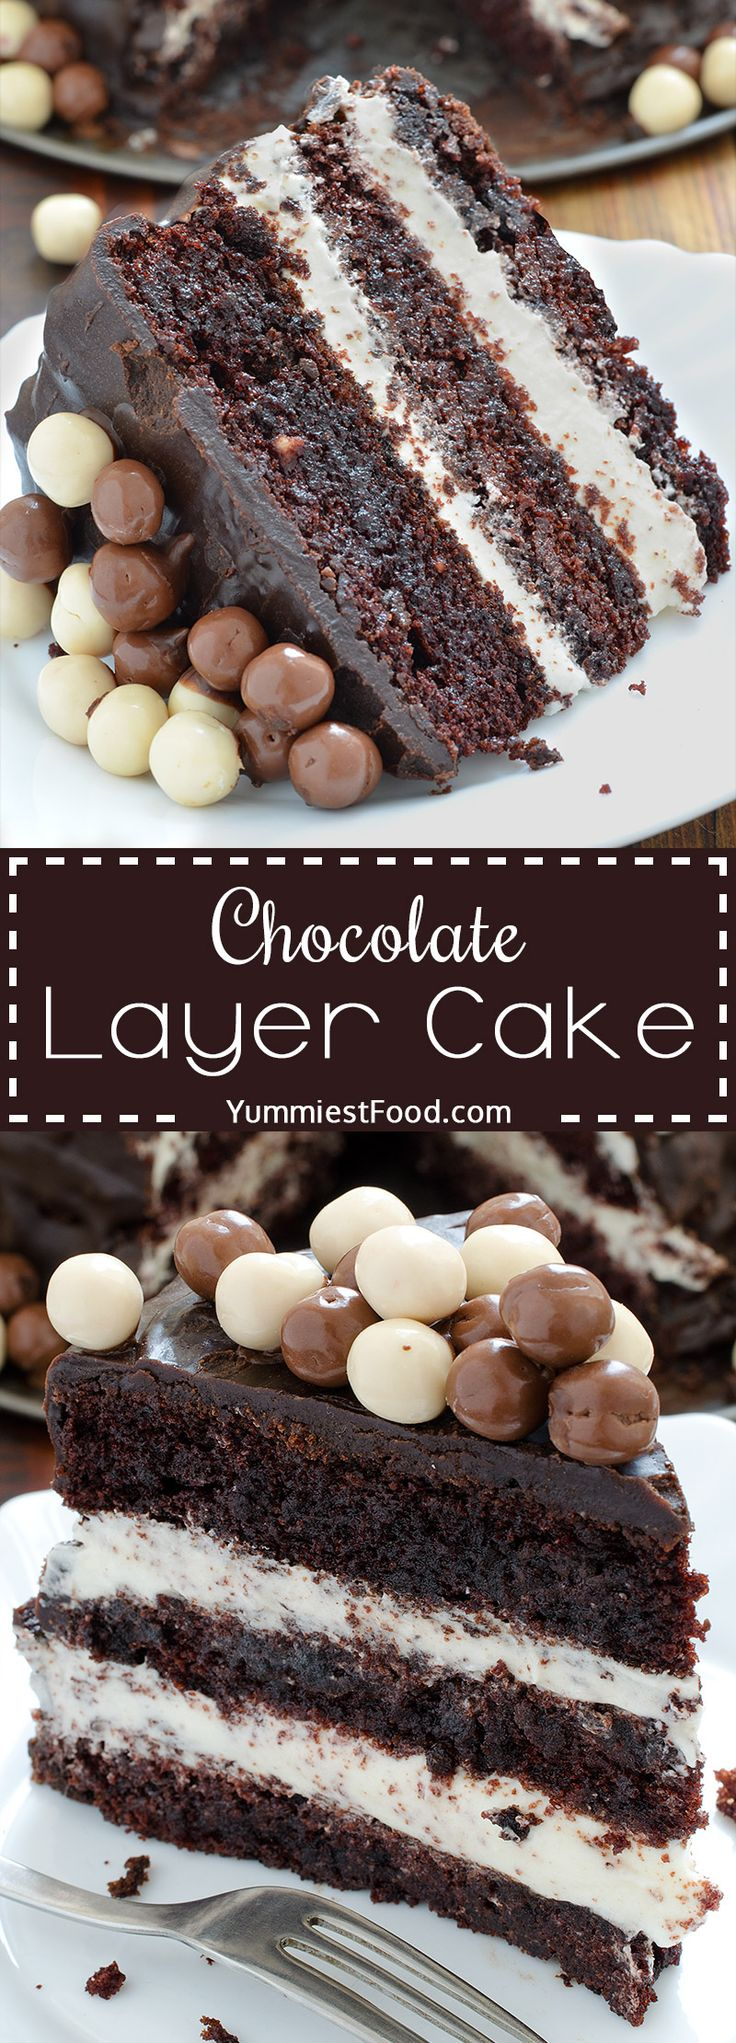 Chocolate Layer Cake with Cream Cheese Filling - Incredible chocolate dessert and real hit for chocolate lovers! Chocolate Layer Cake with Cream Cheese Filling is perfect combination of chocolate and cheese!